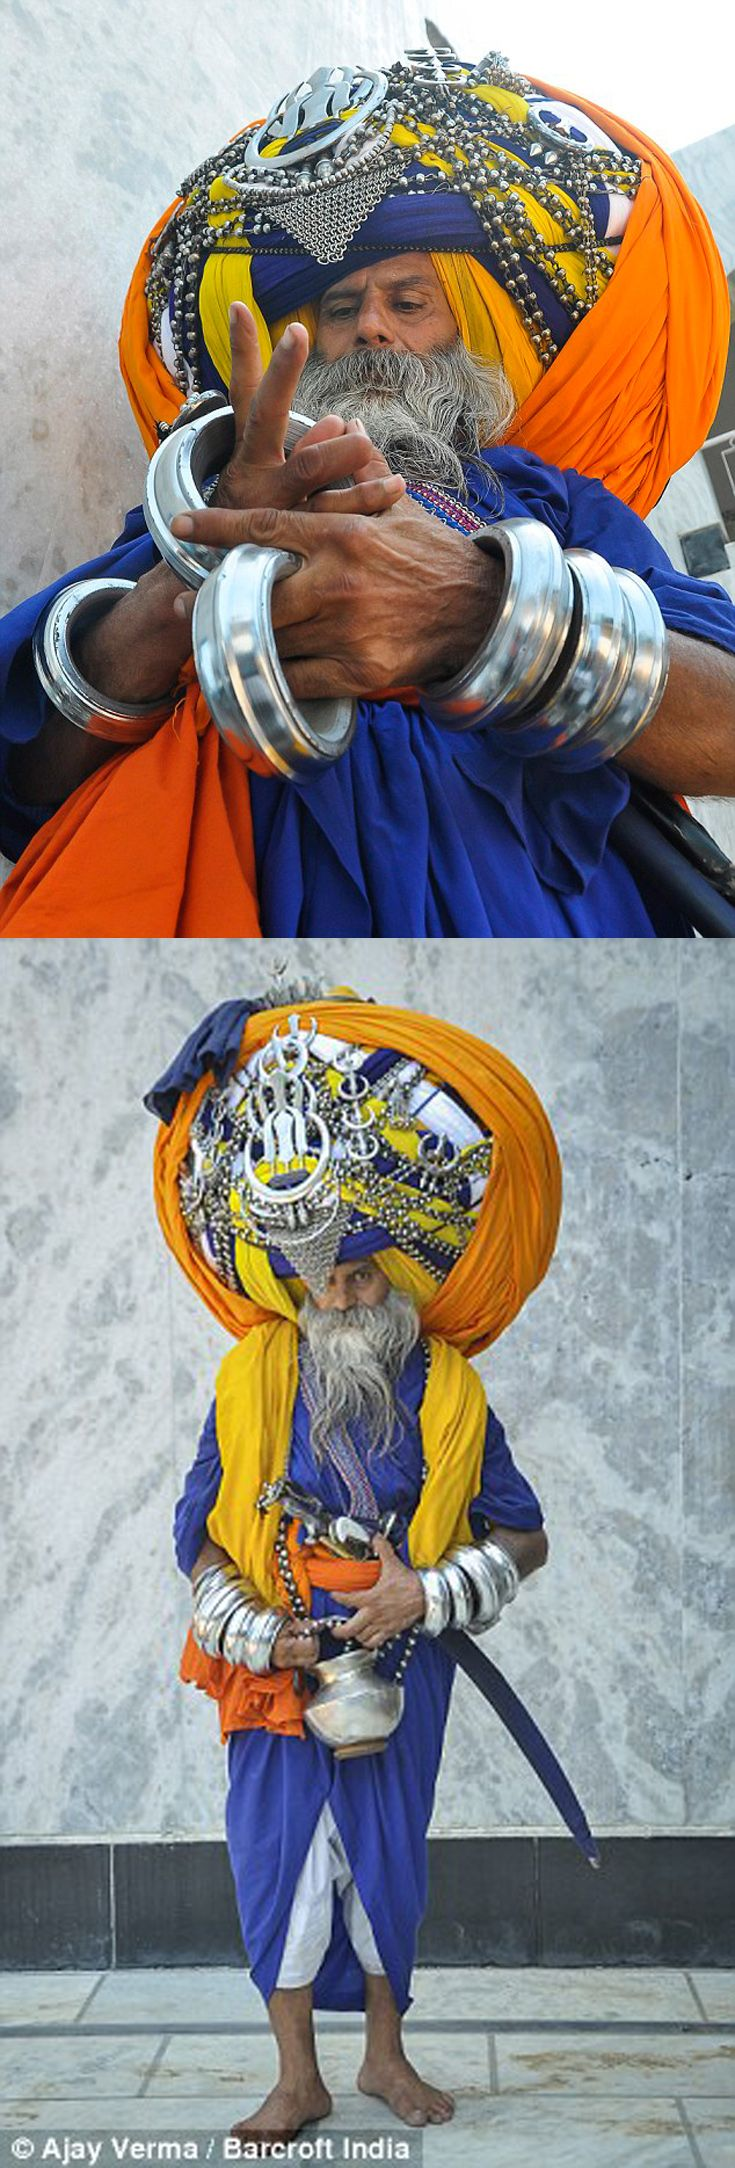 India | Devout Sikh, Avtar Singh Mauni. Punjab | ©Ajay Jain . Bancroft India ||| Source; http://www.dailymail.co.uk/news/article-2736691/The-Turbanator-Devout-Sikh-wears-world-s-largest-turban-takes-six-hours-weighs-100lb.html